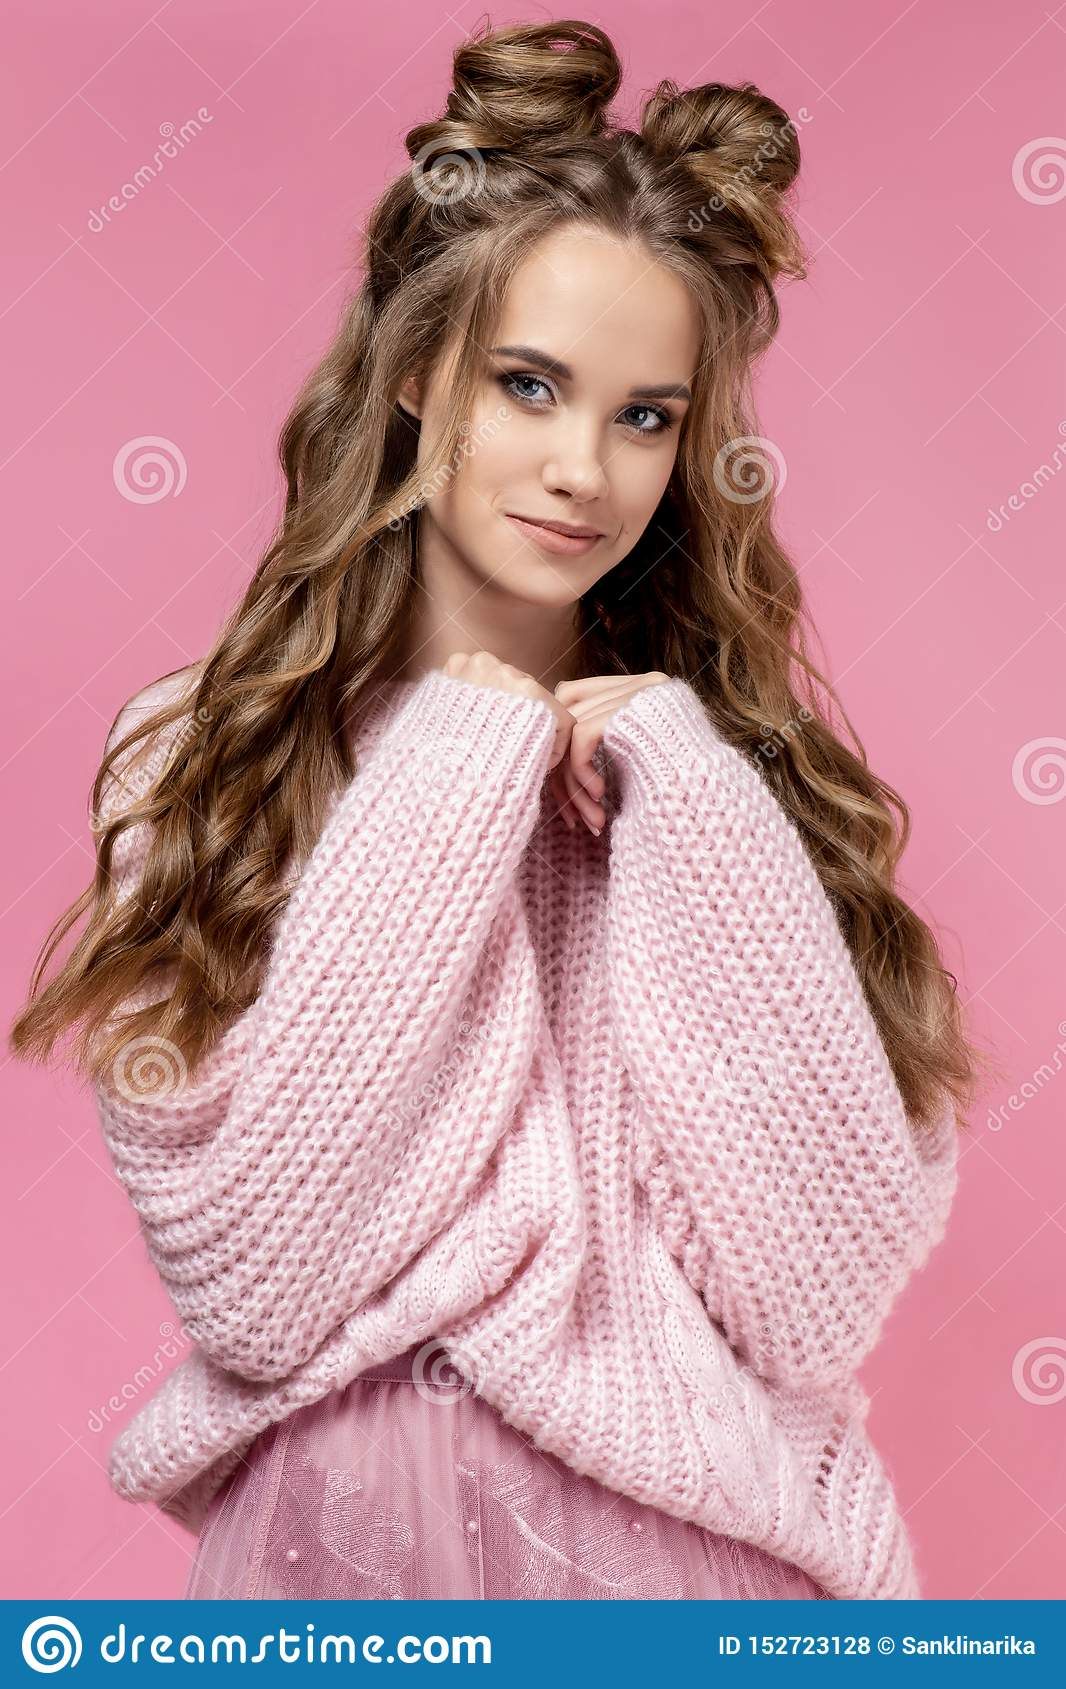 Pretty young girl in a pink sweater on a pink background with a haircut and curly long hair.